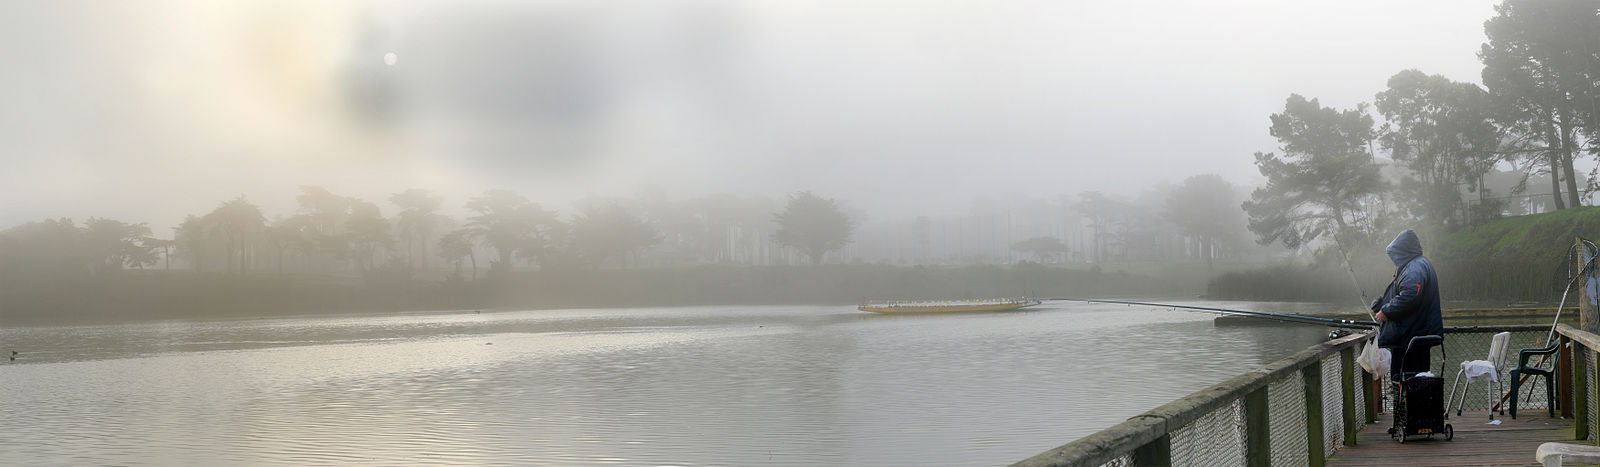 Body found at Lake Merced, raises questions